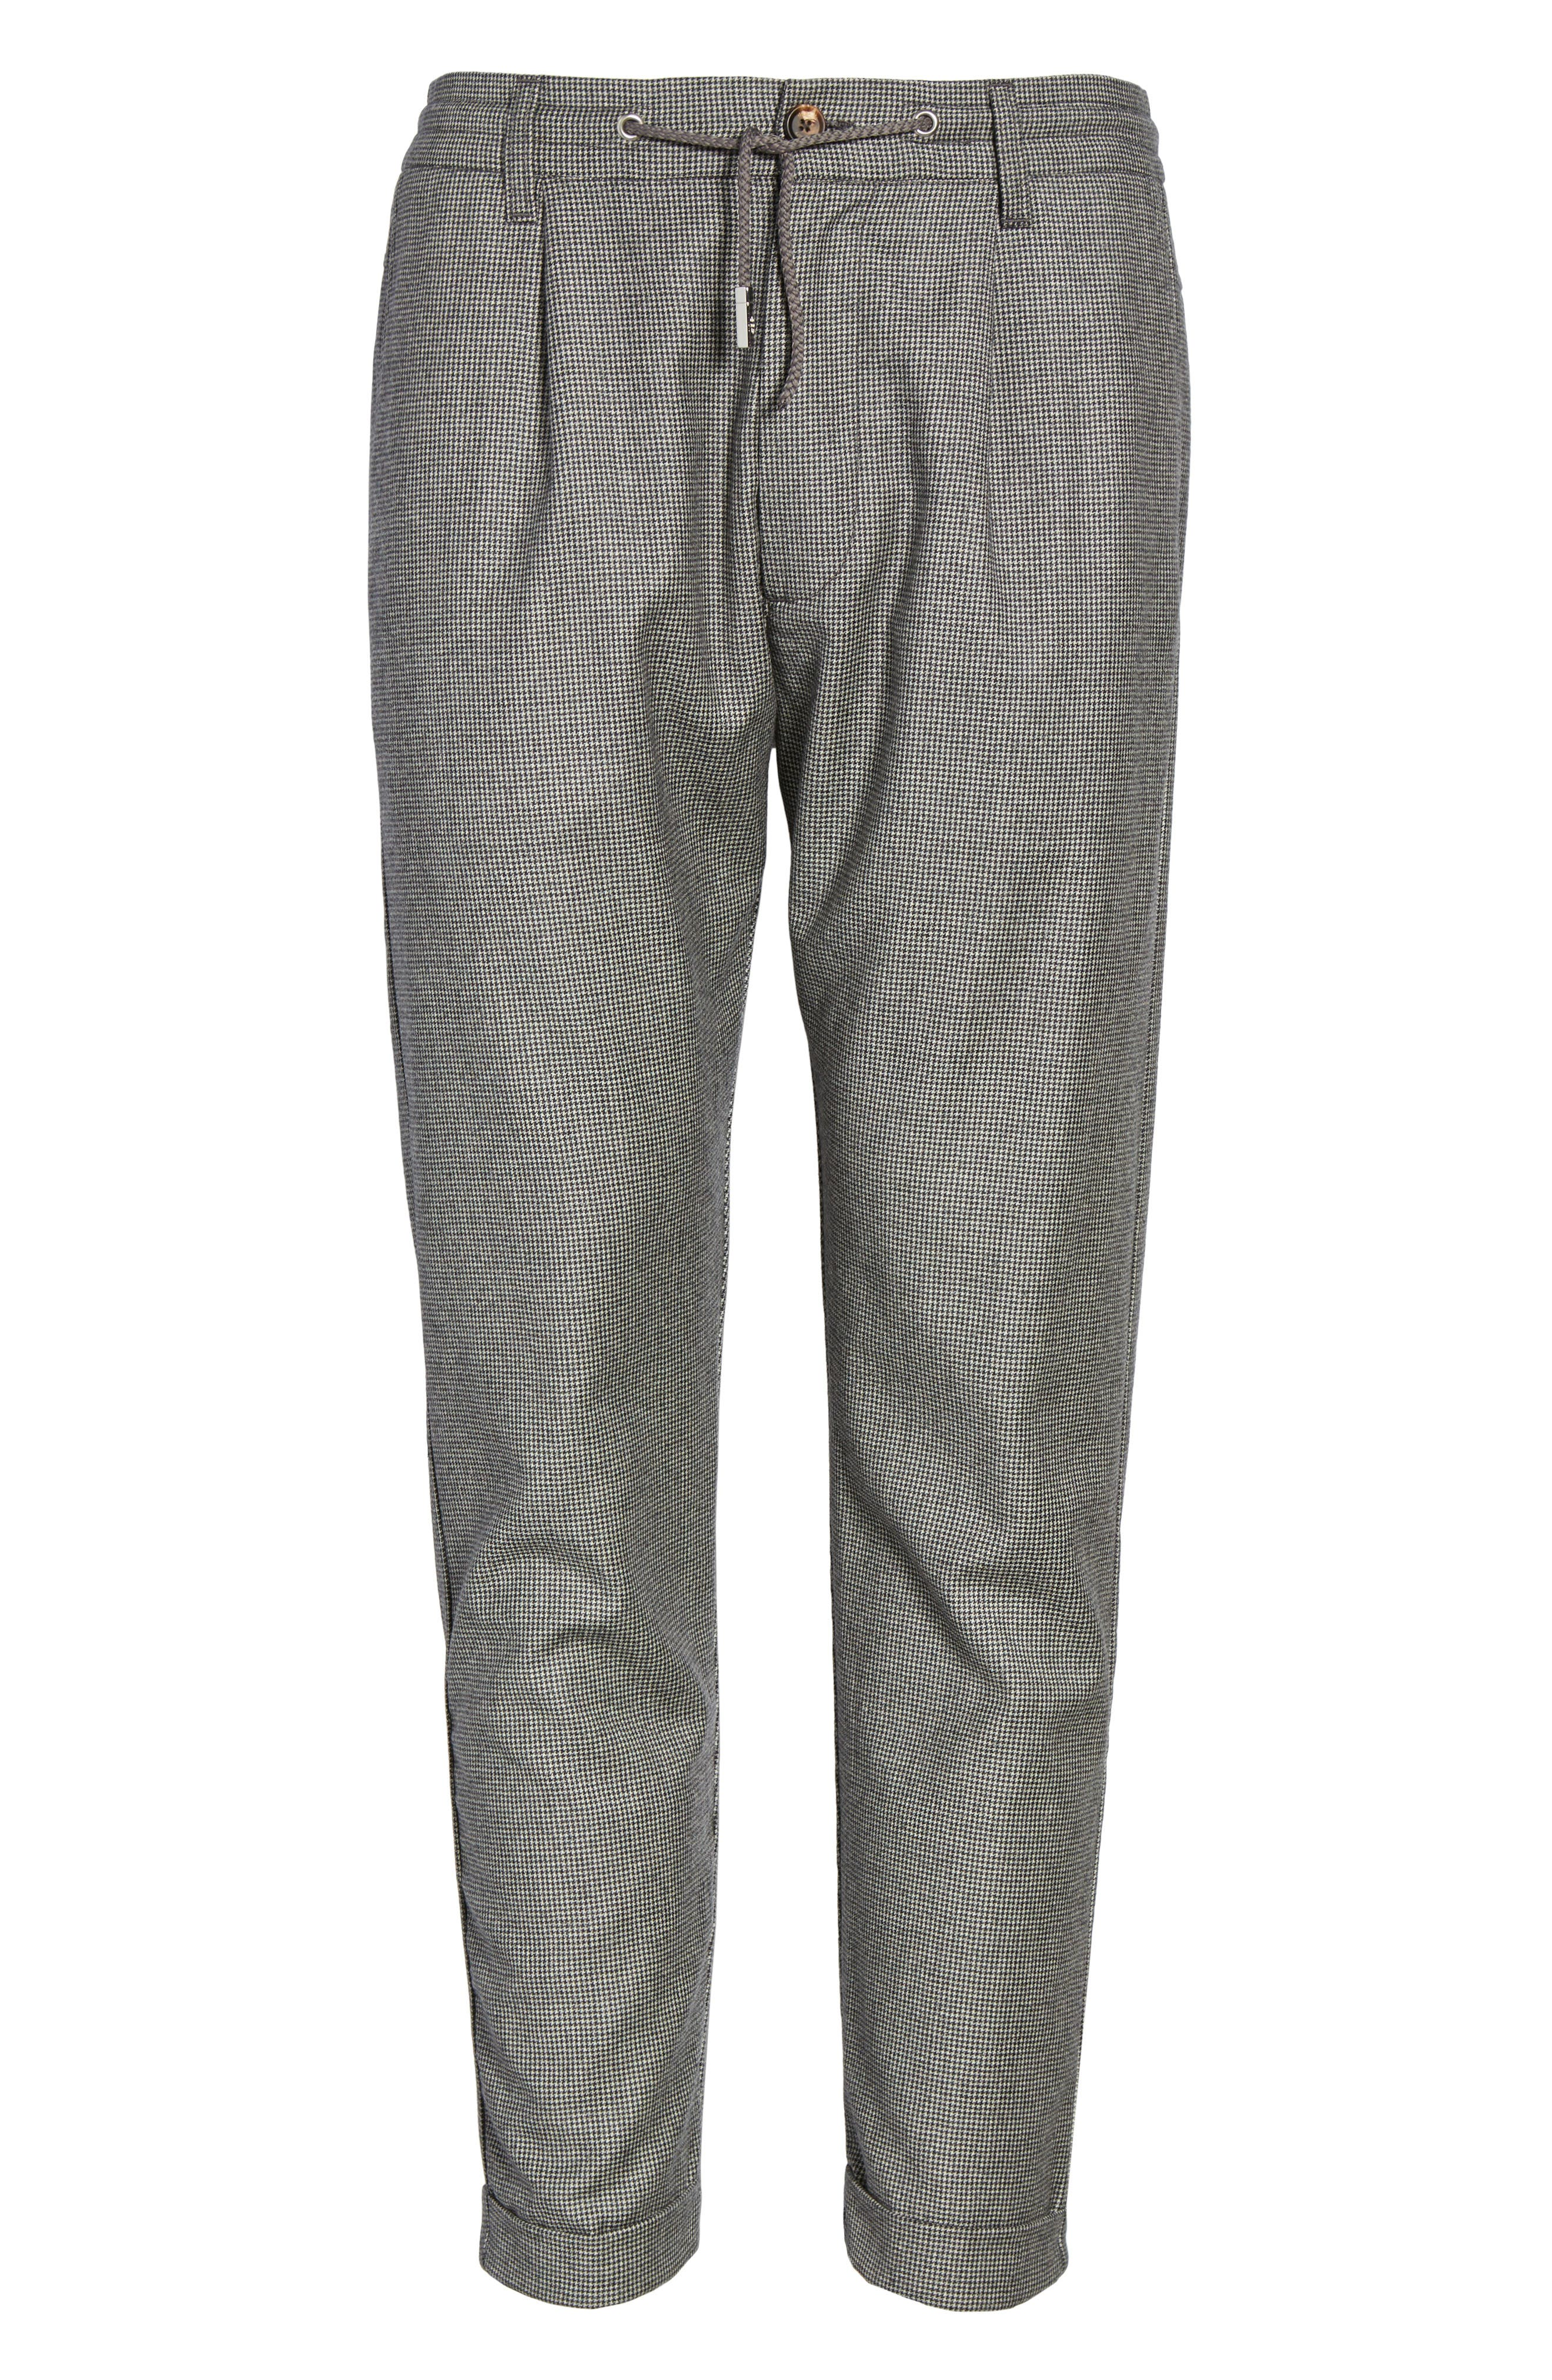 Houndstooth Wool Drawstring Jogger Pants,                             Alternate thumbnail 6, color,                             020